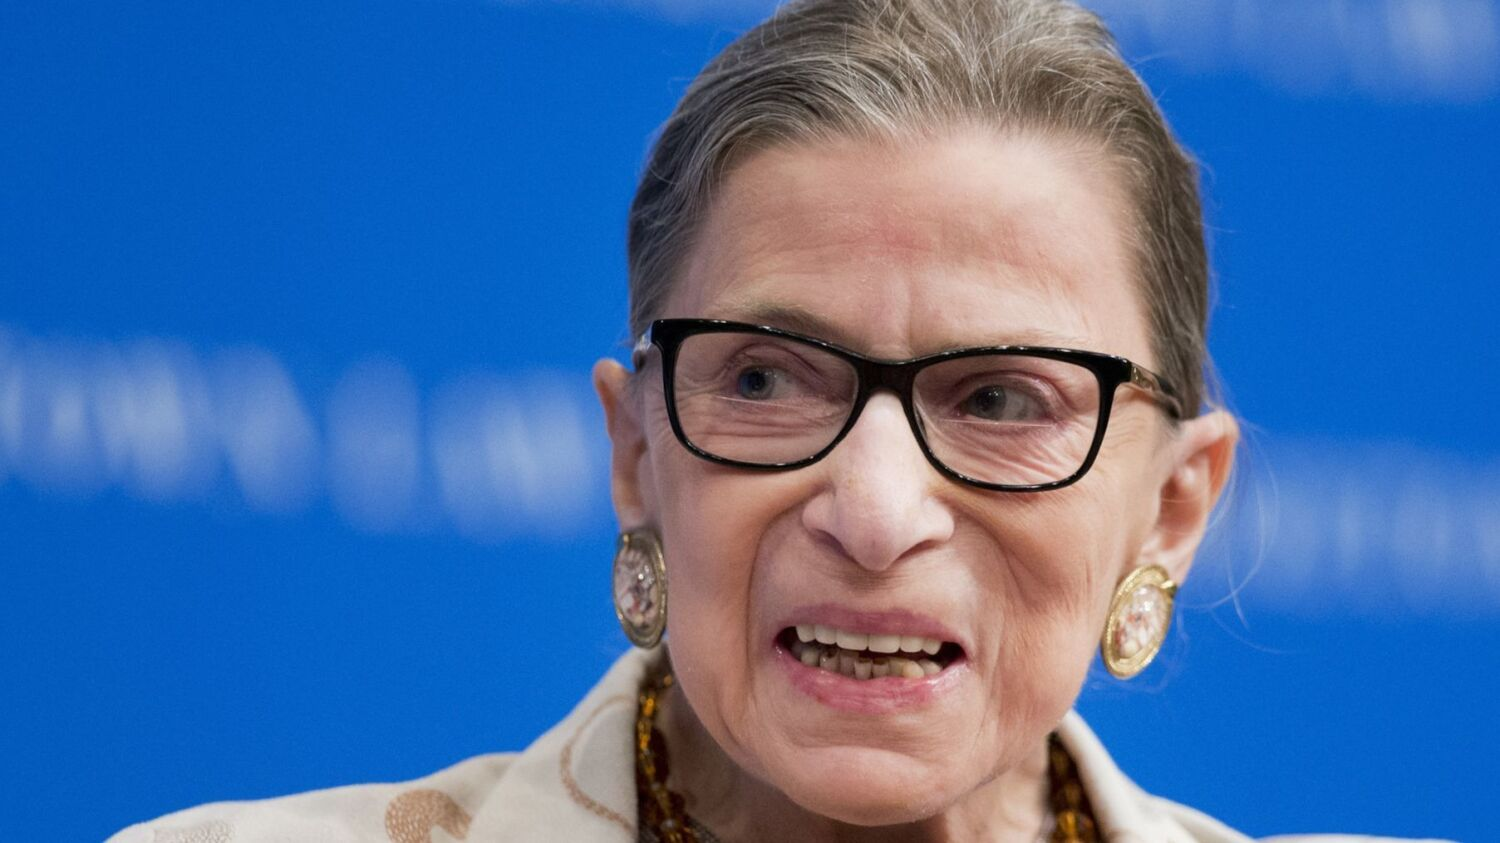 Ruth Bader Ginsburg, liberal lioness of the Supreme Court, dies